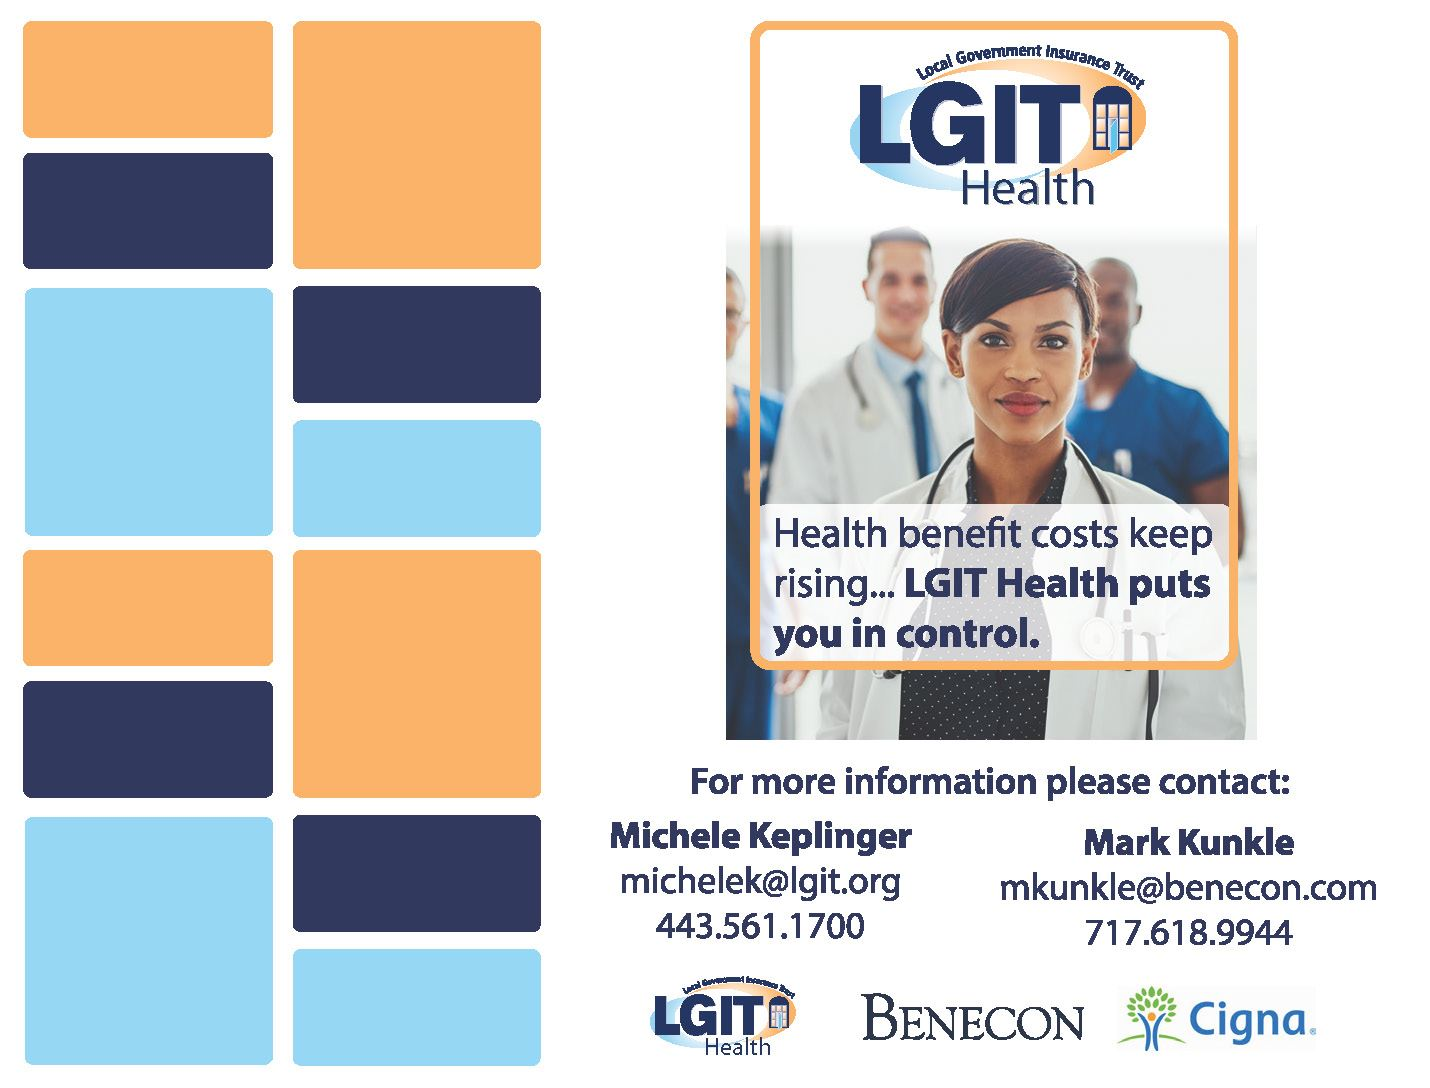 LGIT Health Exhibit Booth